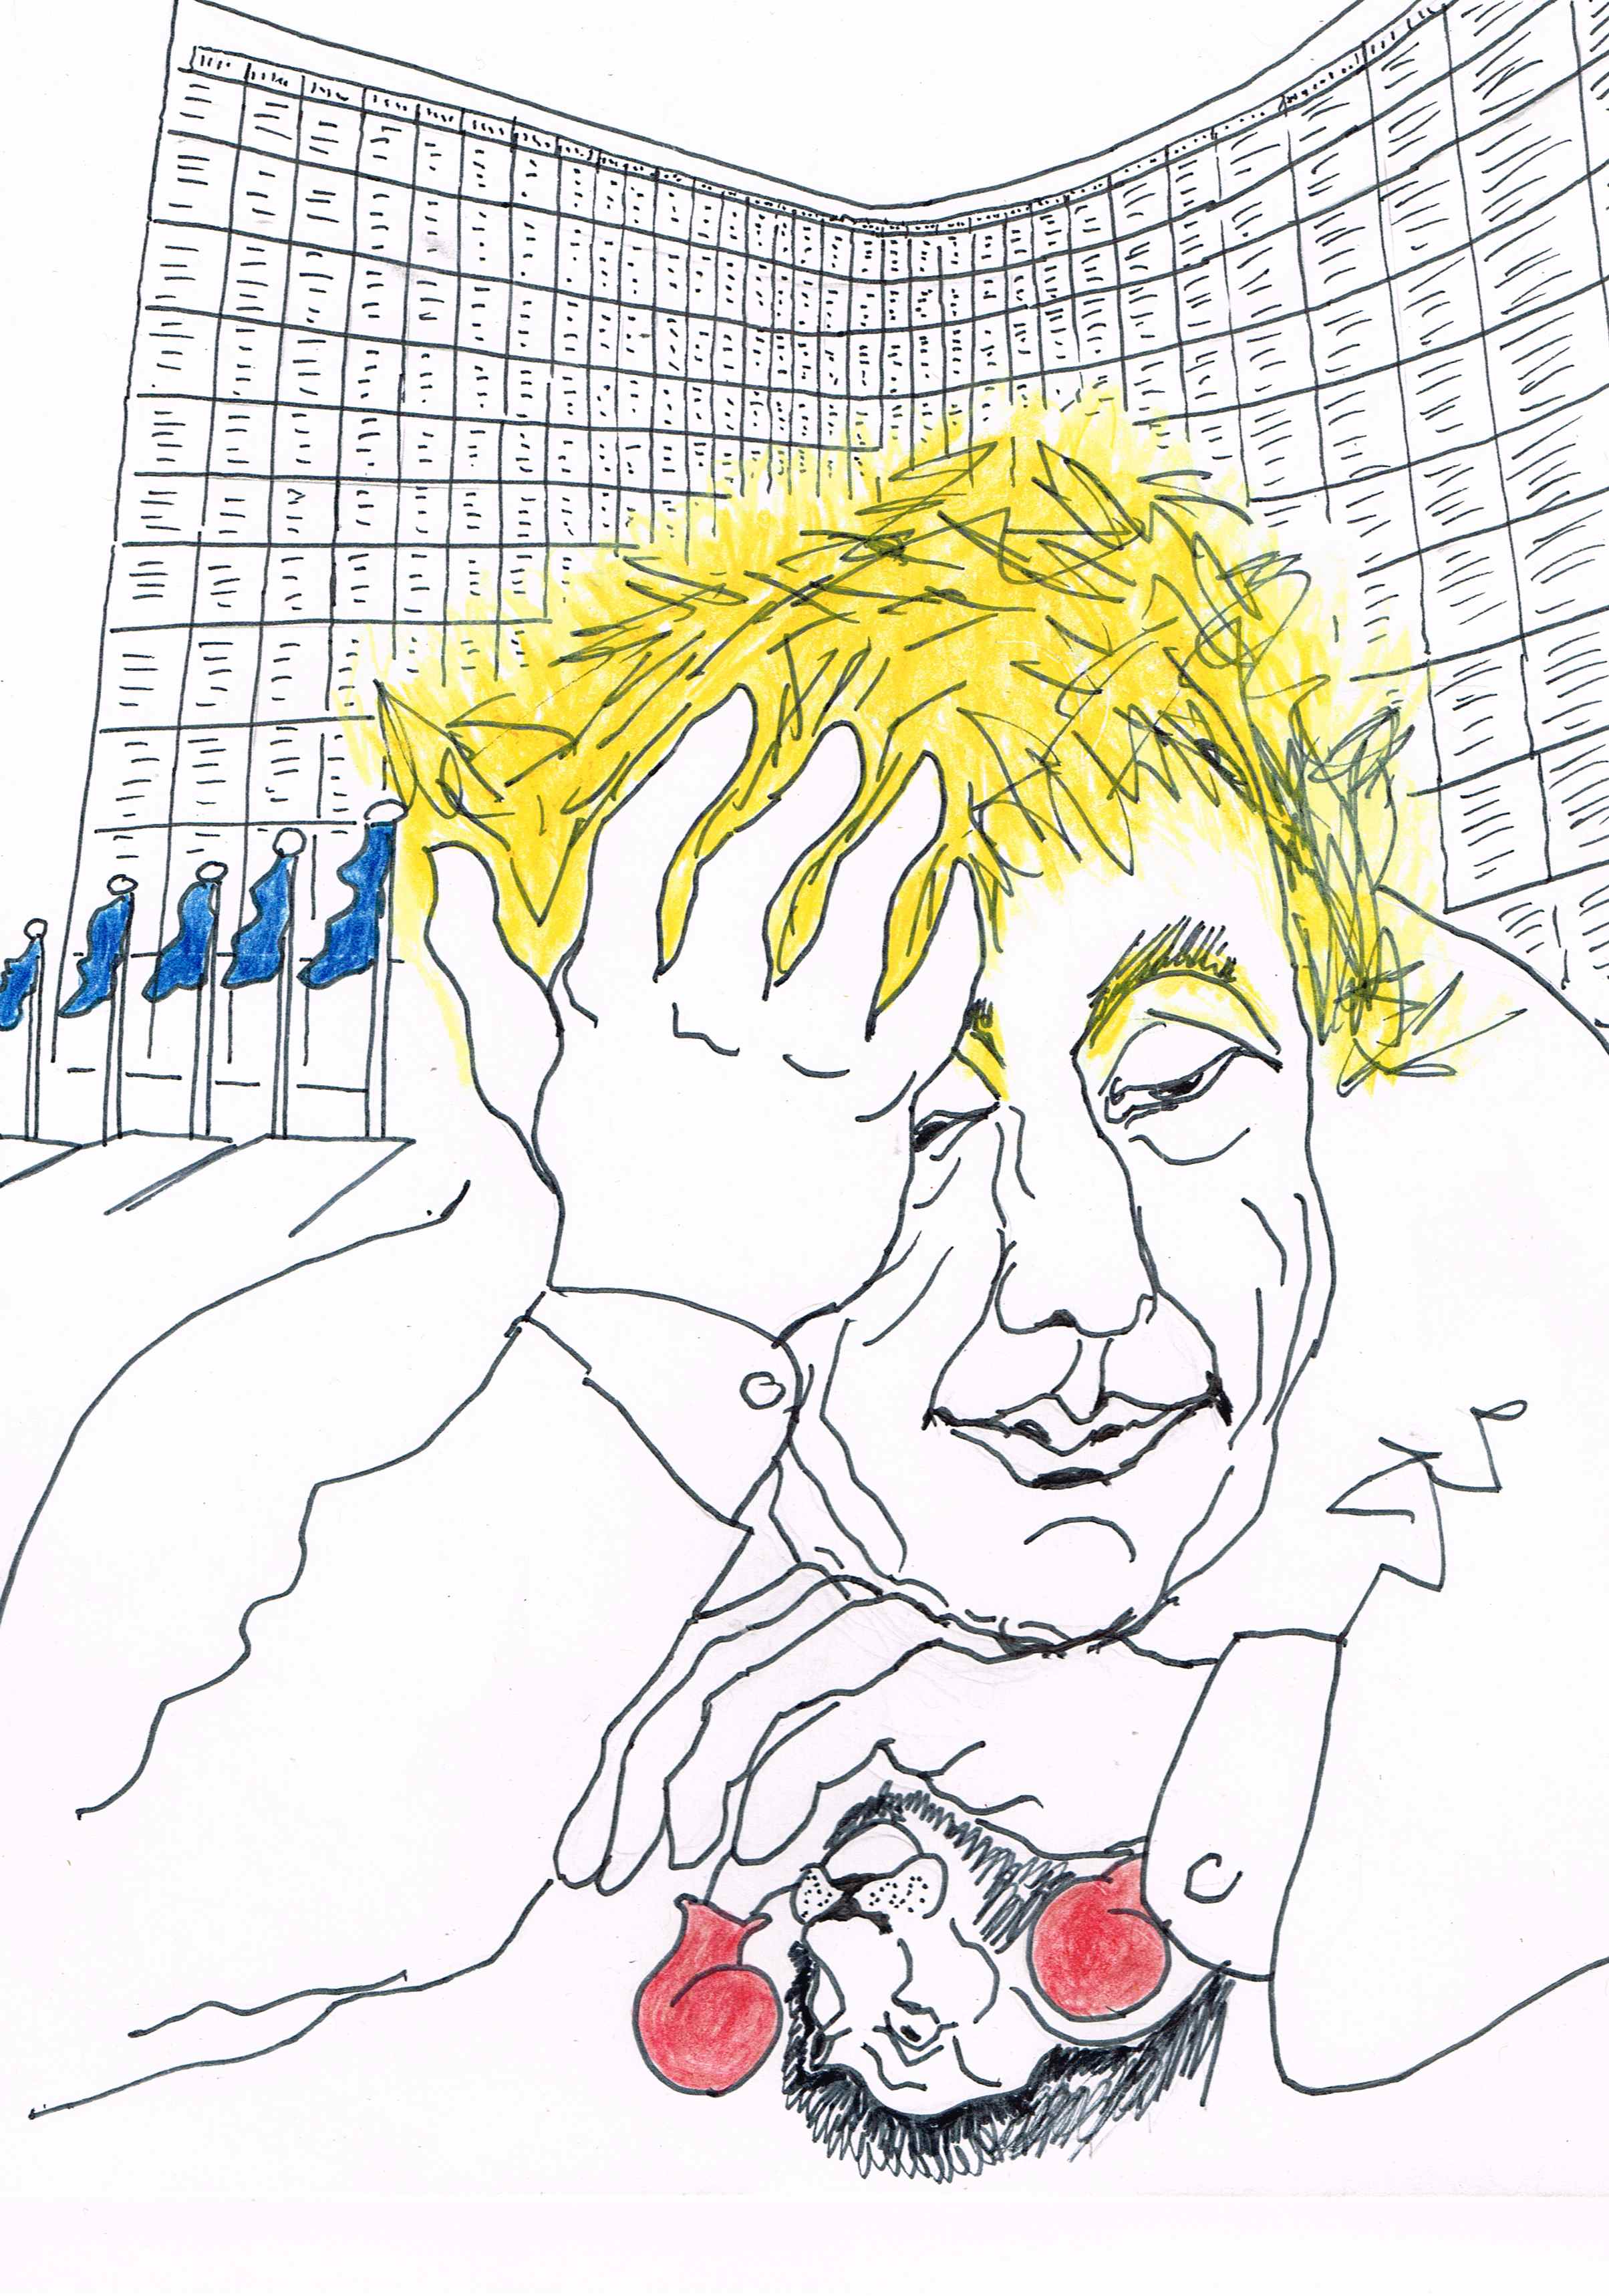 Boris Johnson accuses David Cameron that his renegotiations with the EU are not good enough to protect UK sovereignty.